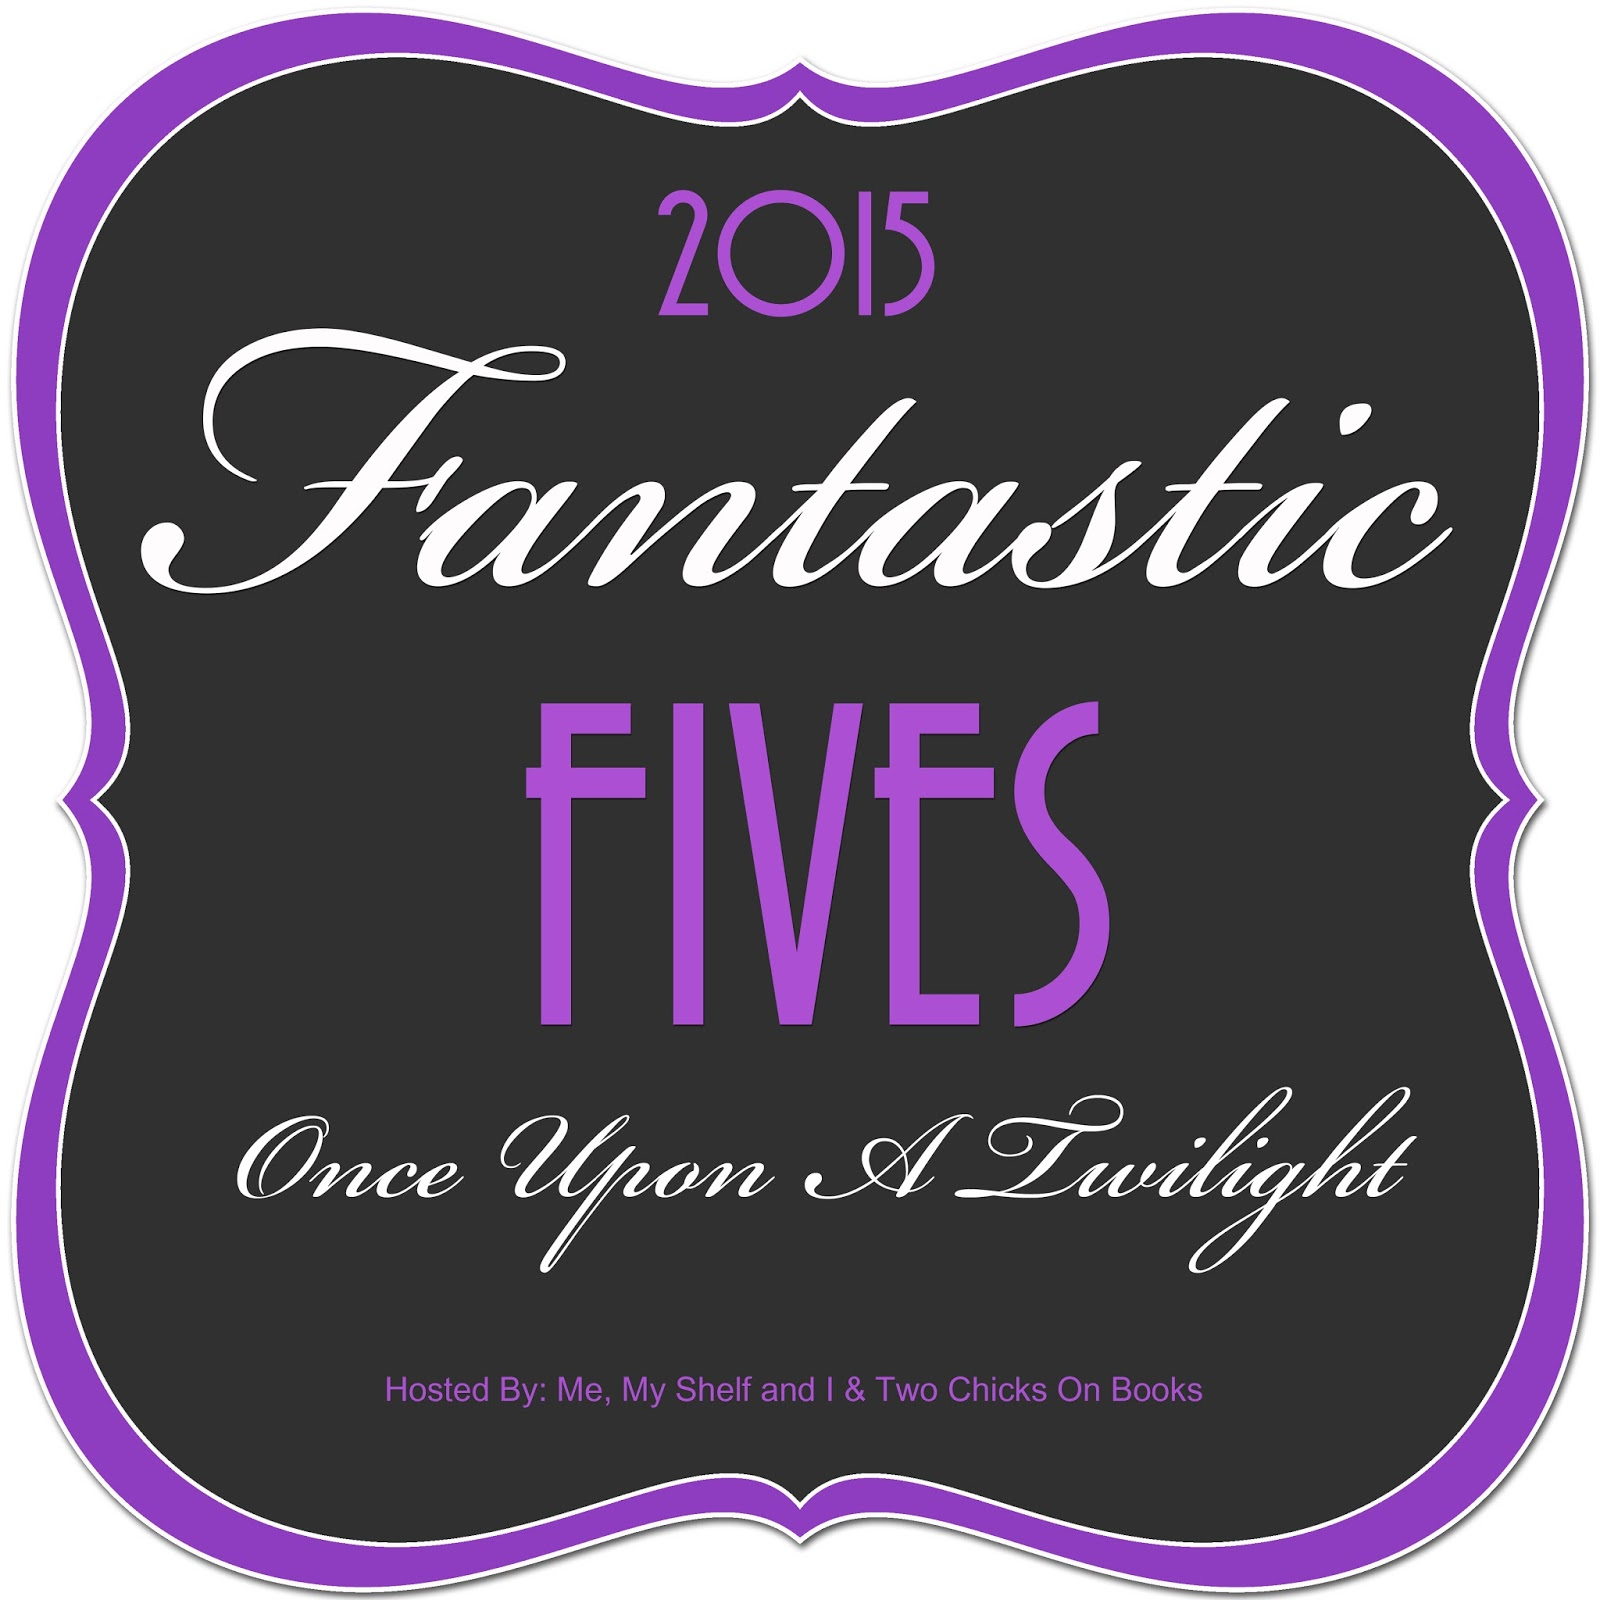 Once Upon A Twilight 2015 S Fantastic Fives Celebration